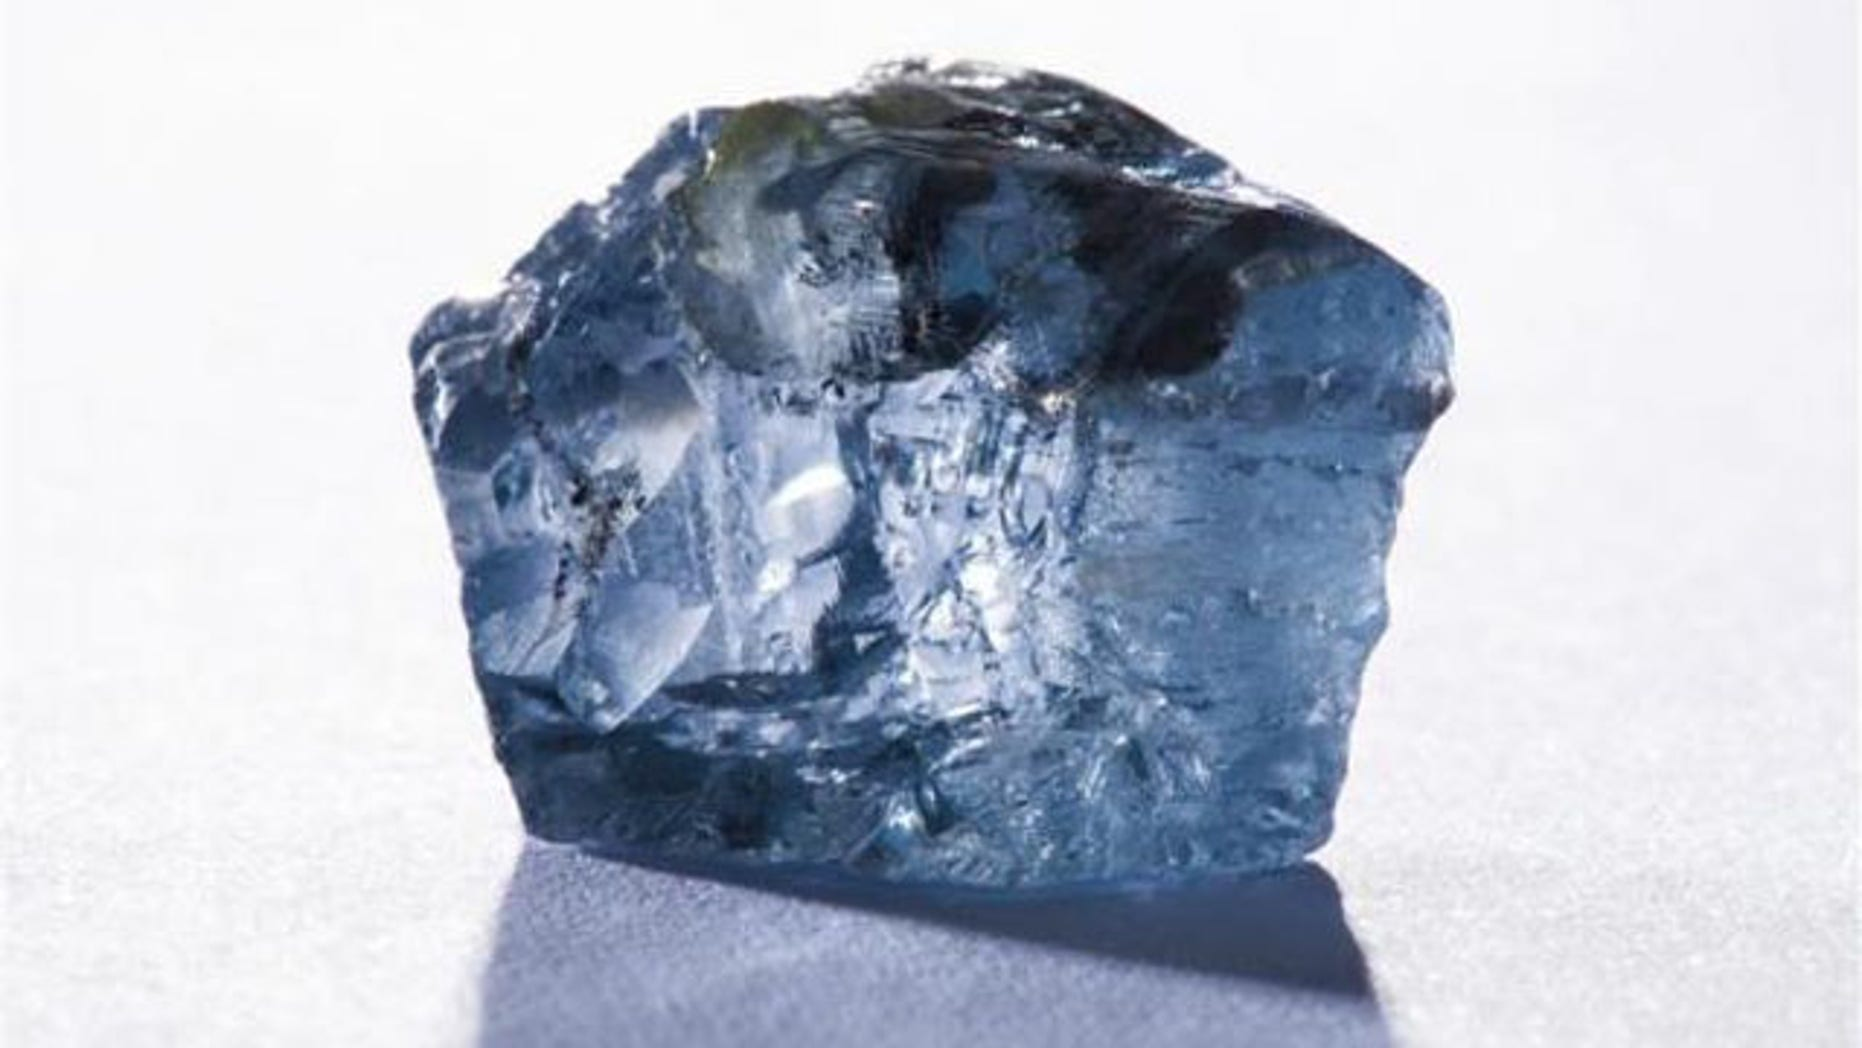 January 21, 2014: The exceptional 29.6 carat blue diamond recovered earlier this month is seen in this undated photograph received via Petra Diamonds. (Reuters/Petra Diamonds Limited/Handout)